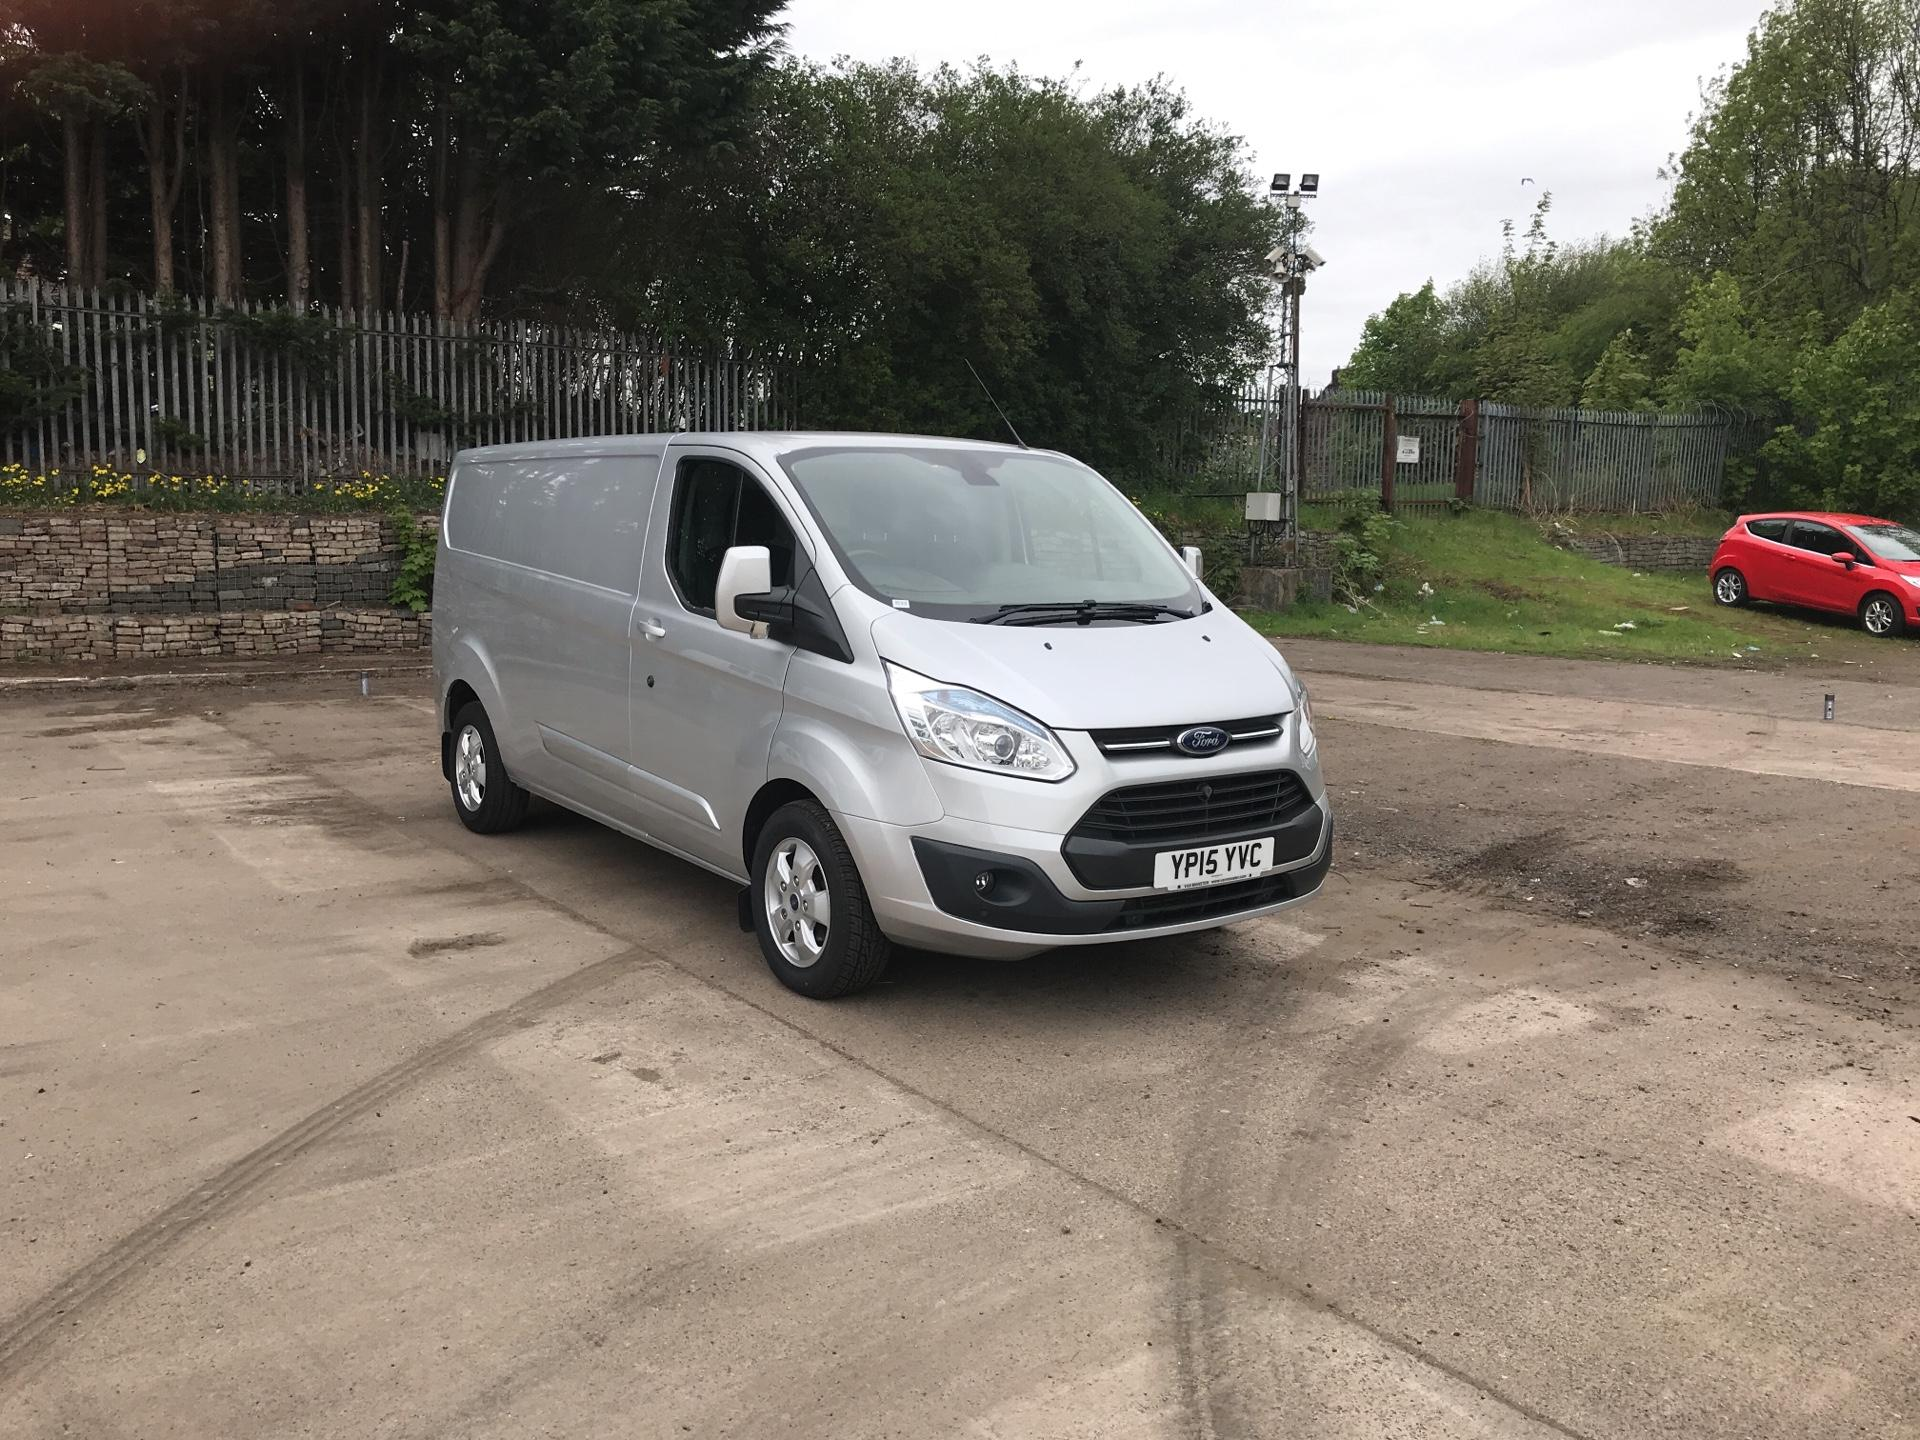 2015 Ford Transit Custom 290 L2 DIESEL FWD 2.2 TDCI 125PS LOW ROOF LIMITED VAN EURO 5 (YP15YVC)